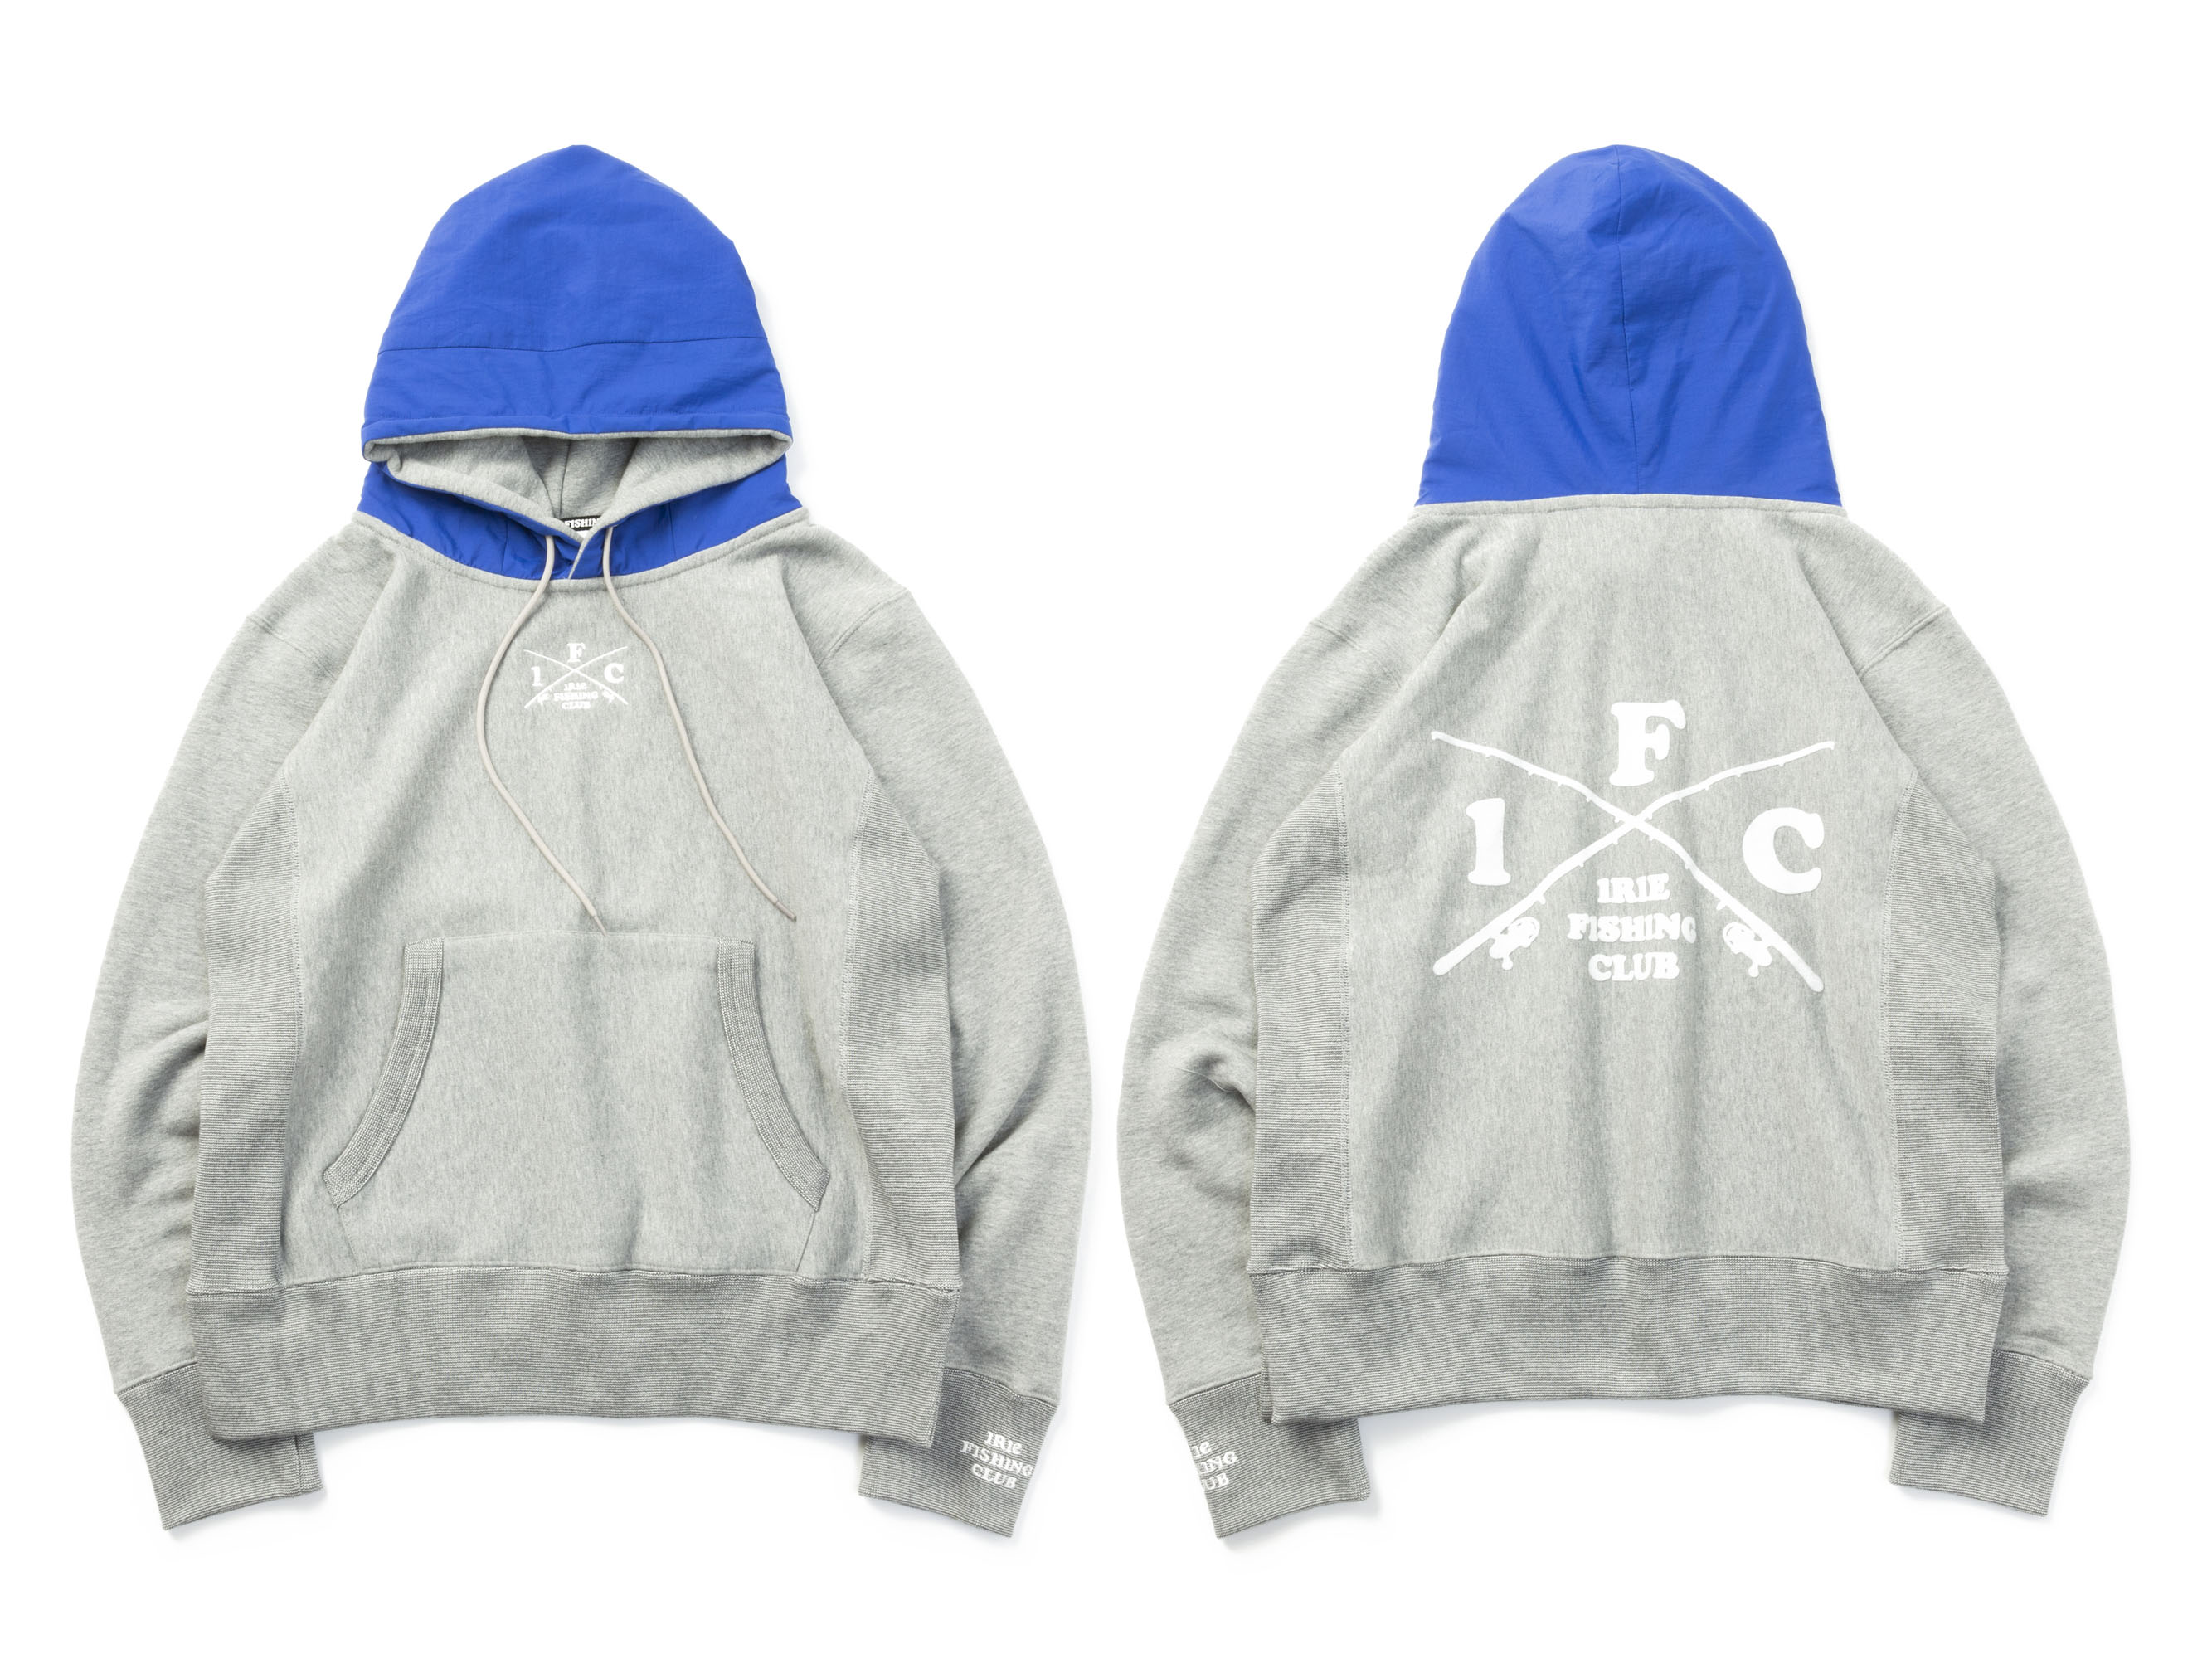 CROSS ROD NYLON HOODIE - IRIE FISHING CLUB